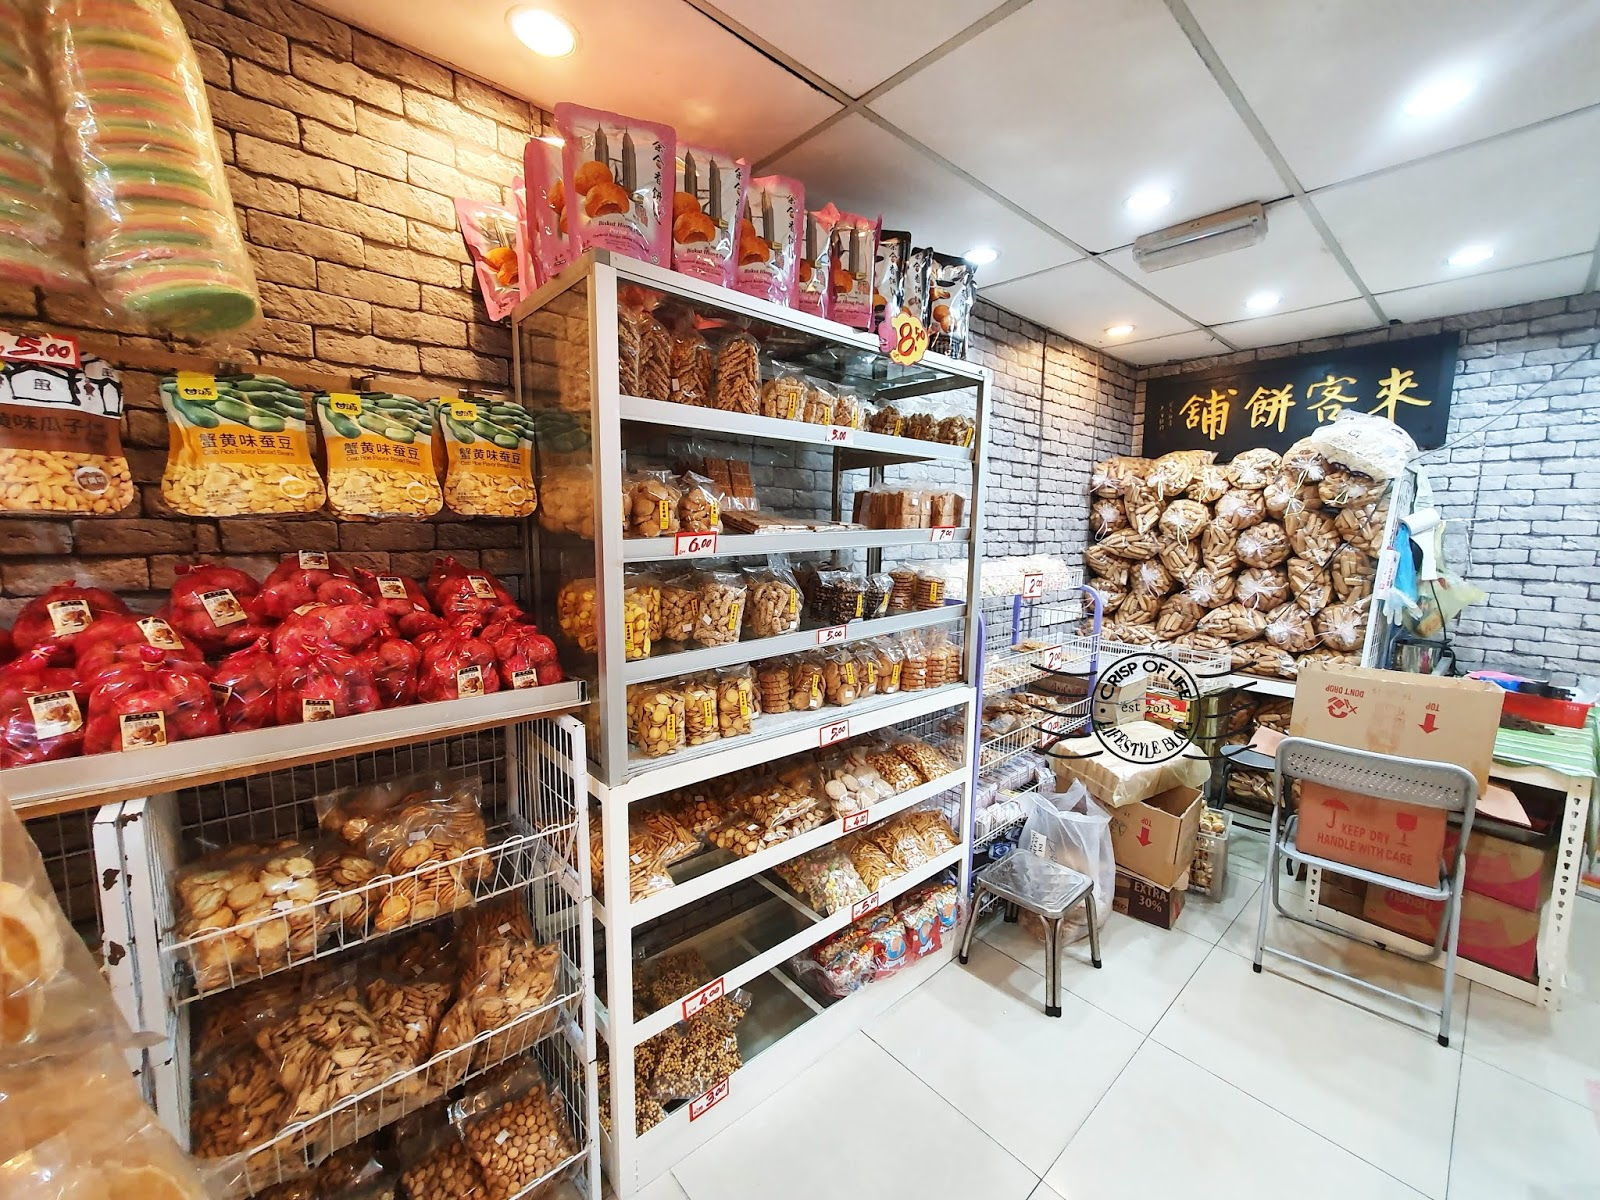 Nostajic Childhood Biscuits Shop - Like Biscuits Trading 铺饼客来 at Jelutong Market